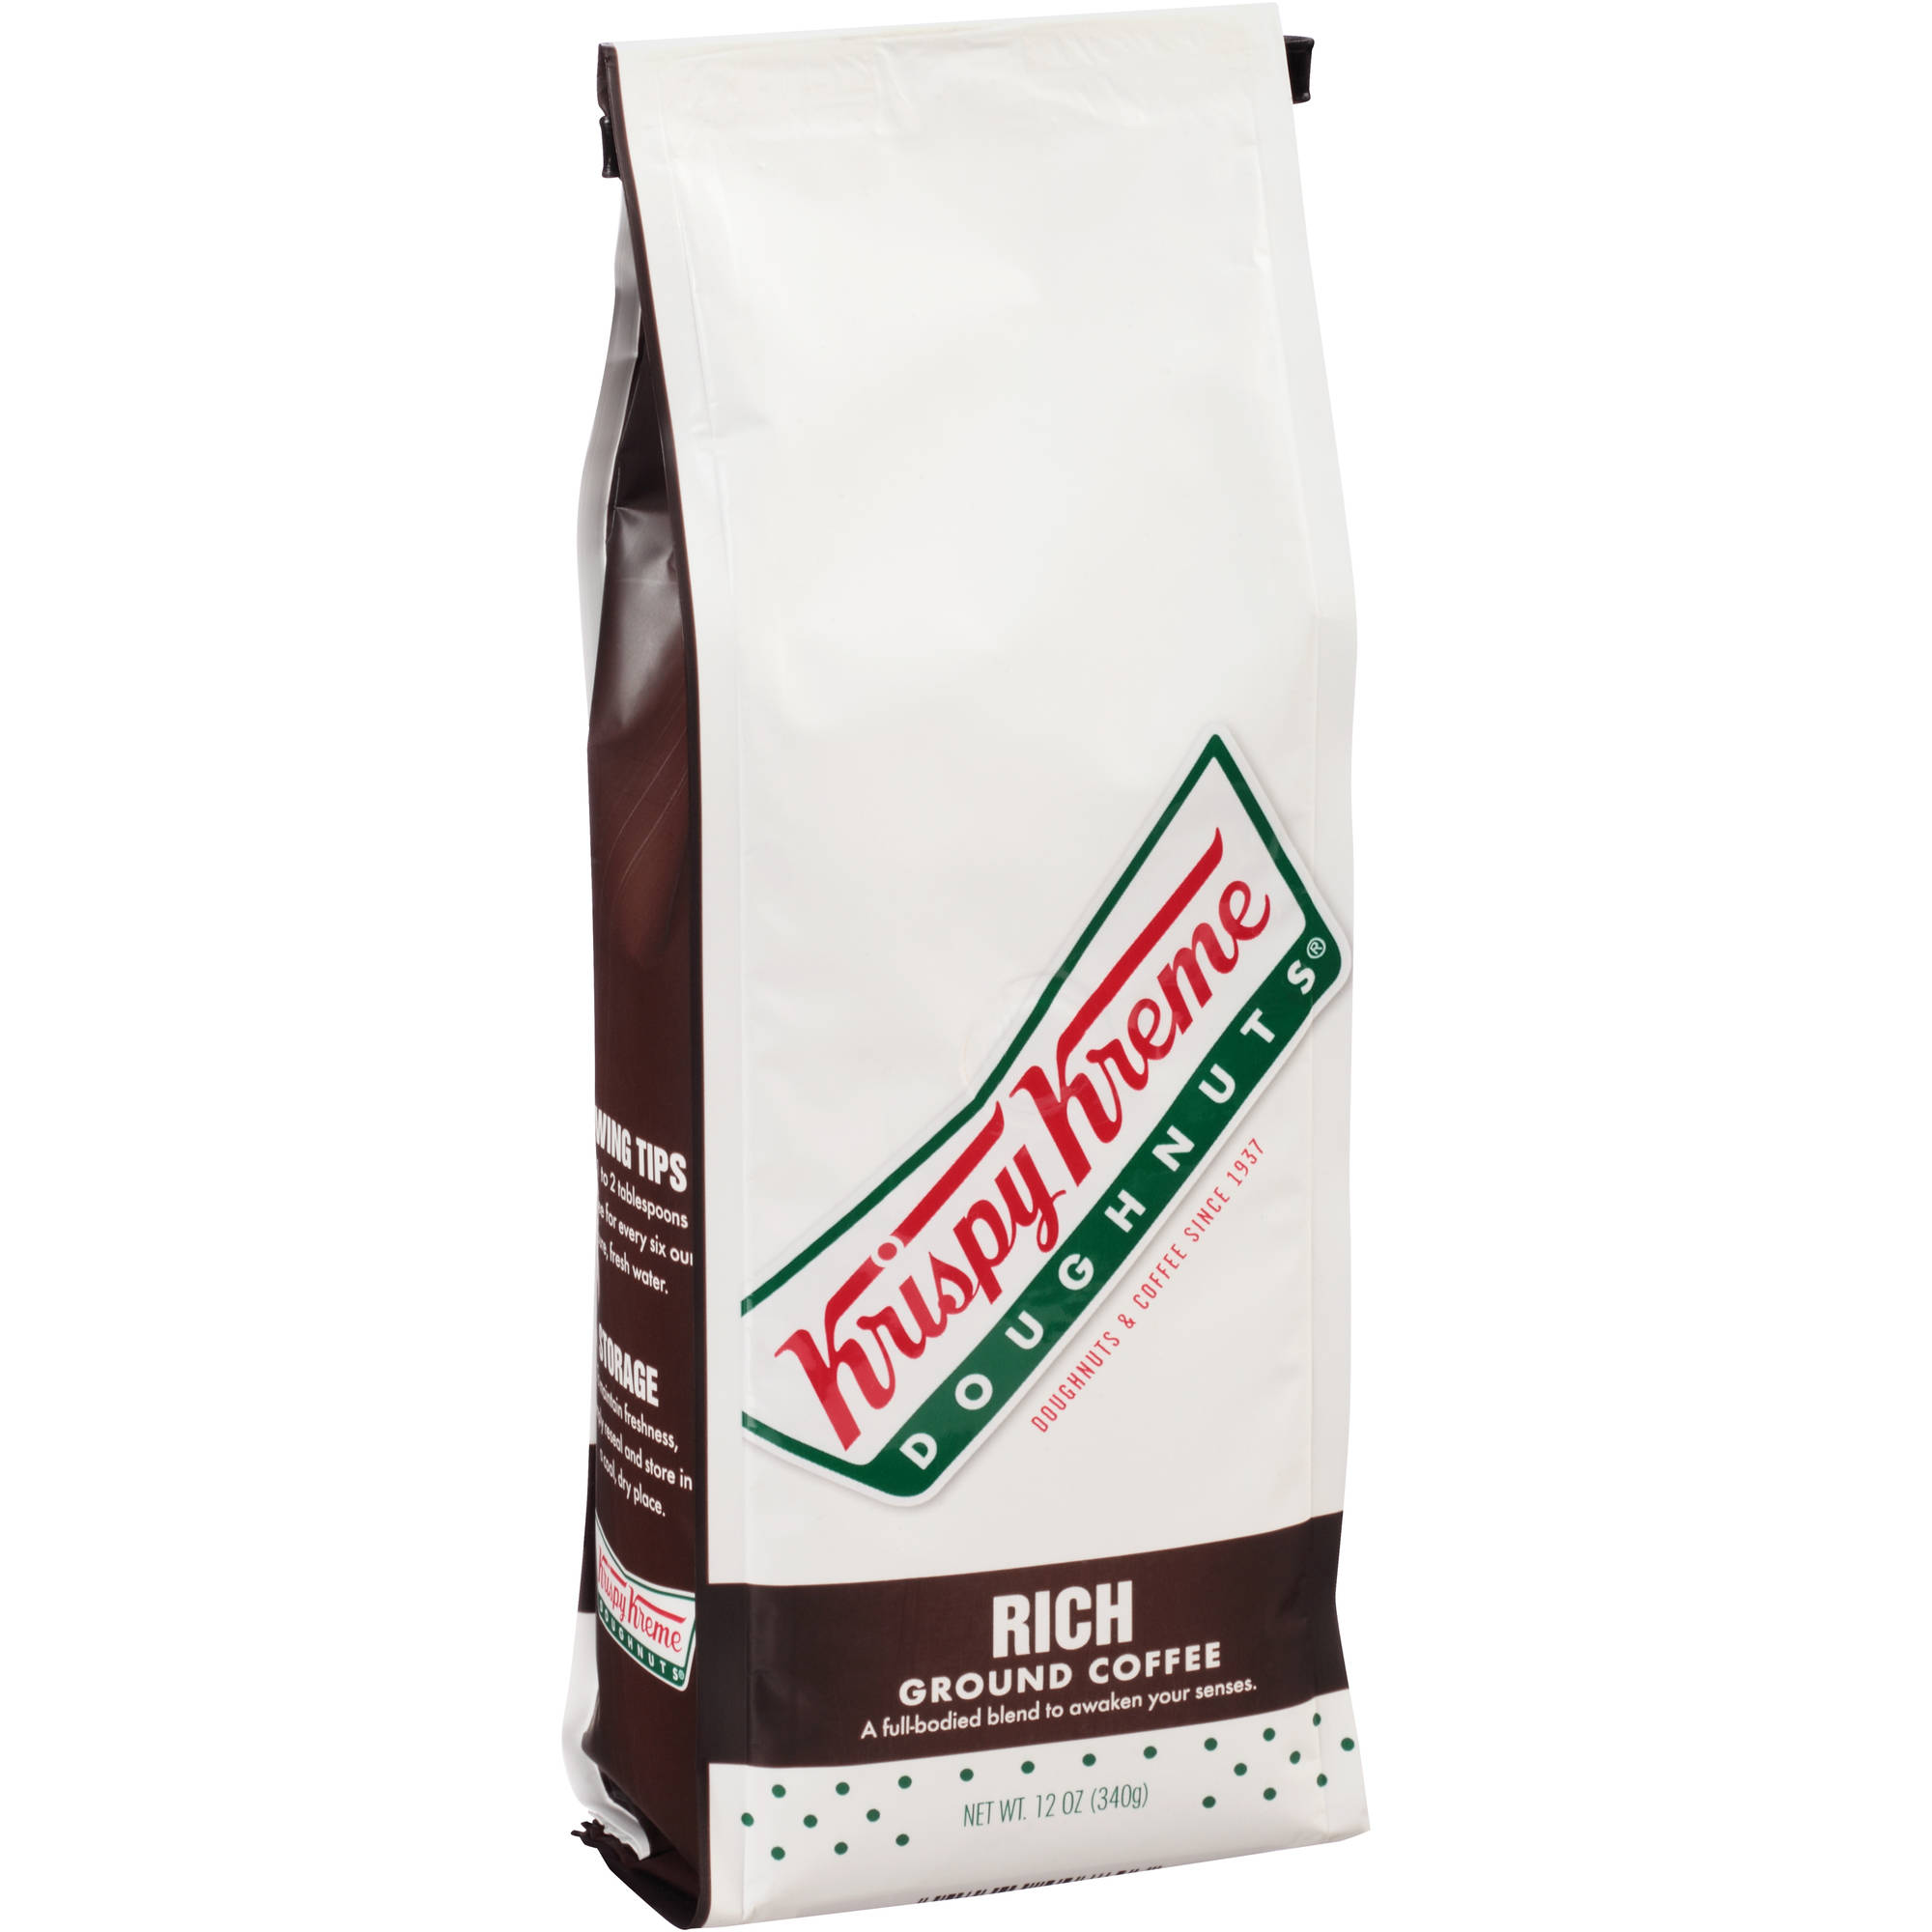 Krispy Kreme Doughnuts Rich Ground Coffee, 12 oz